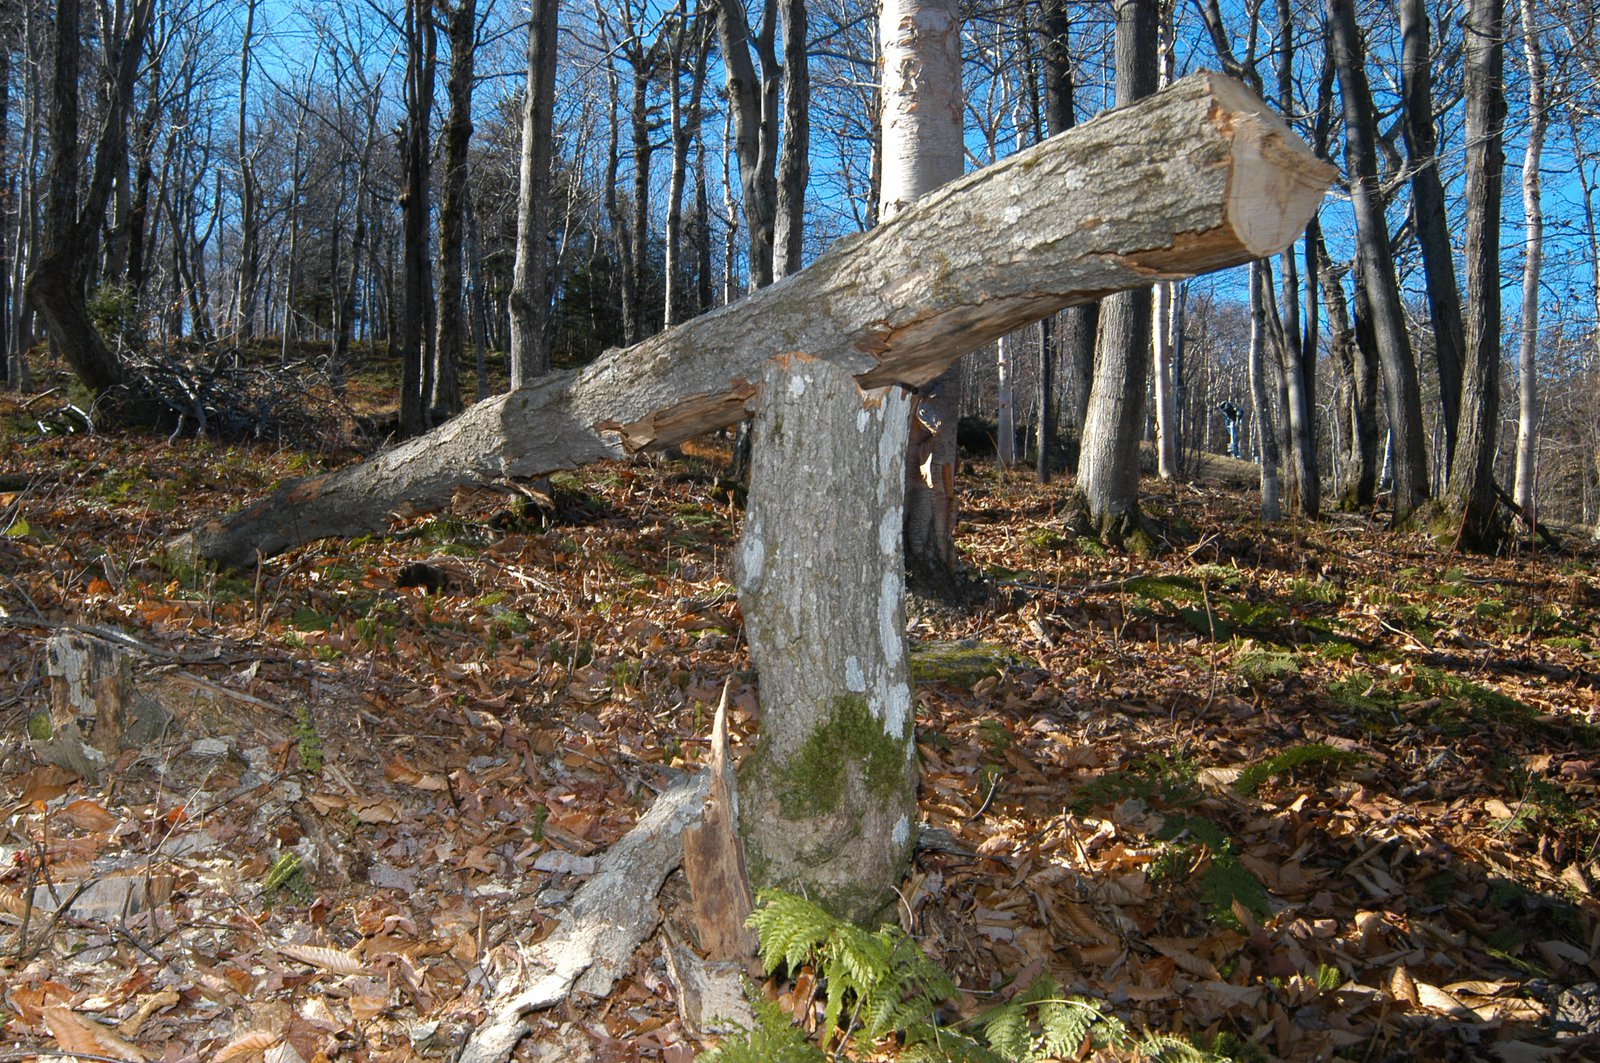 One of the many new features in the woods of Carinthia